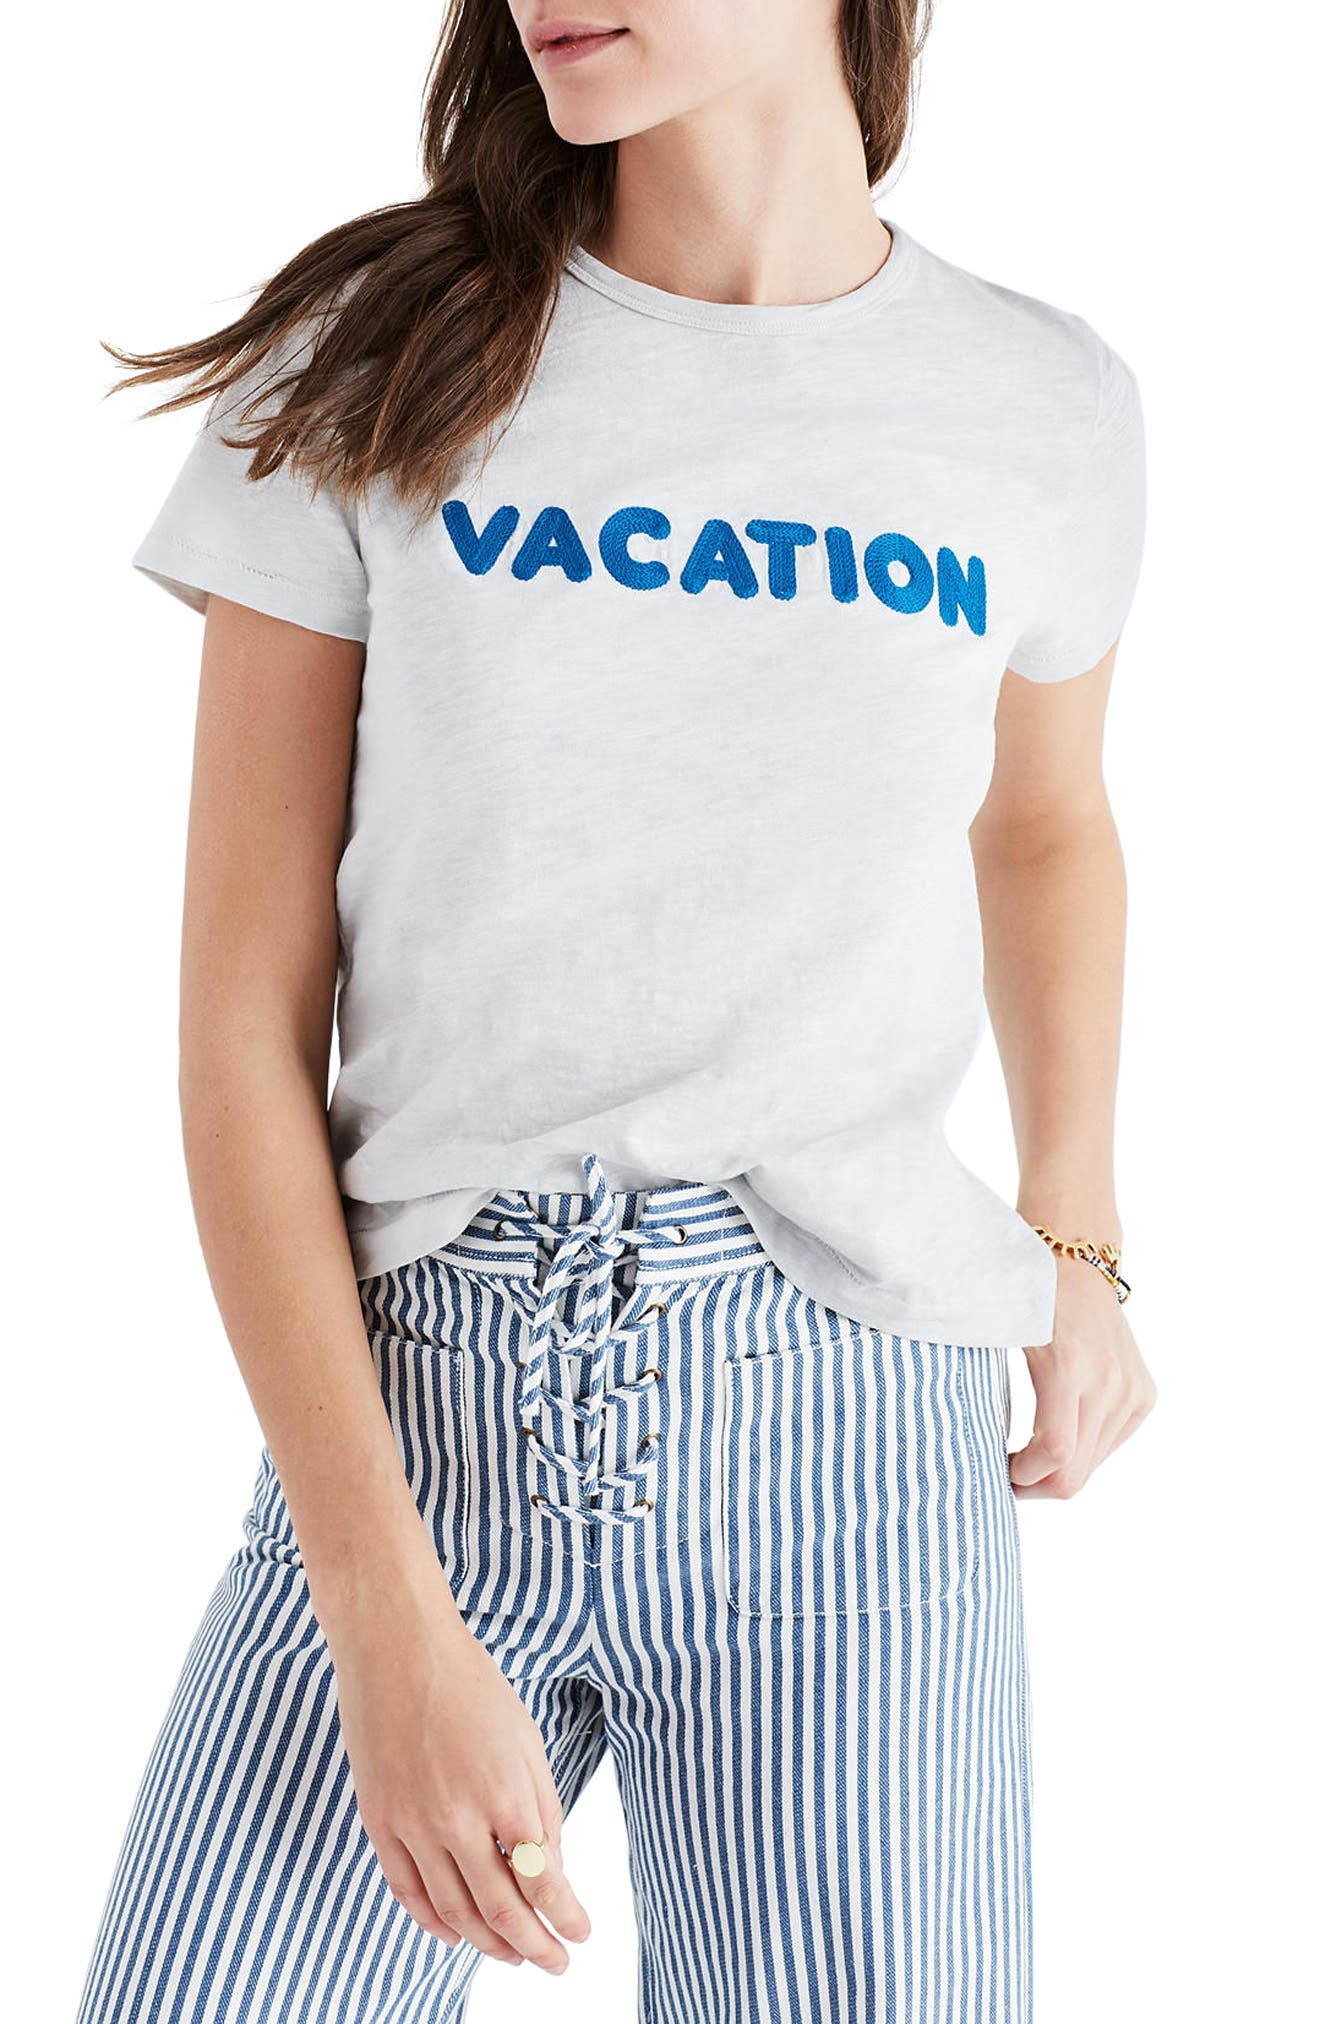 Main Image - Madewell Vacation Embroidered Tee